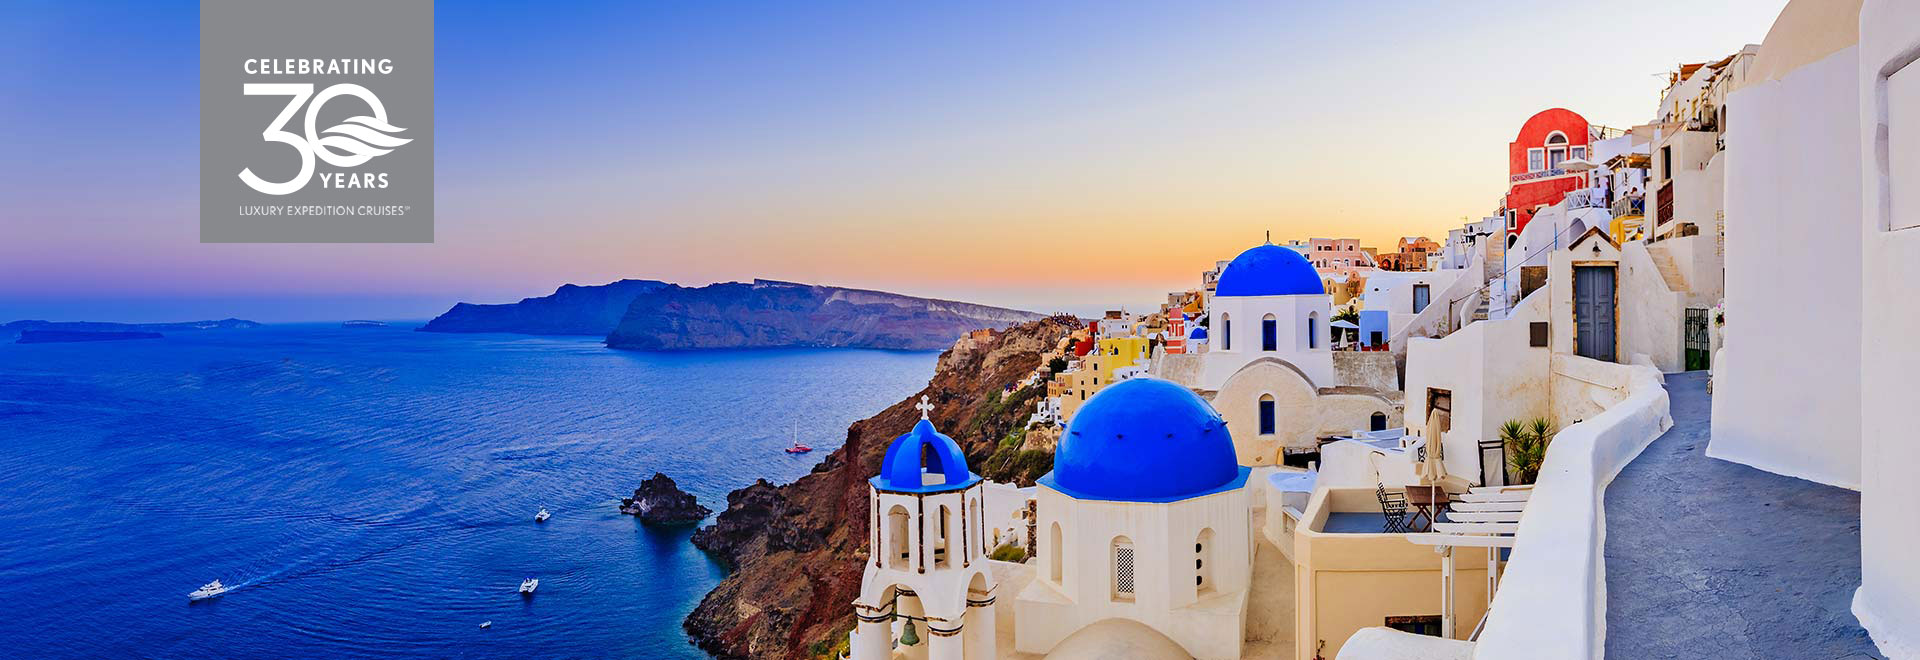 Europe Greece Greek Isle Cruise 30th MH